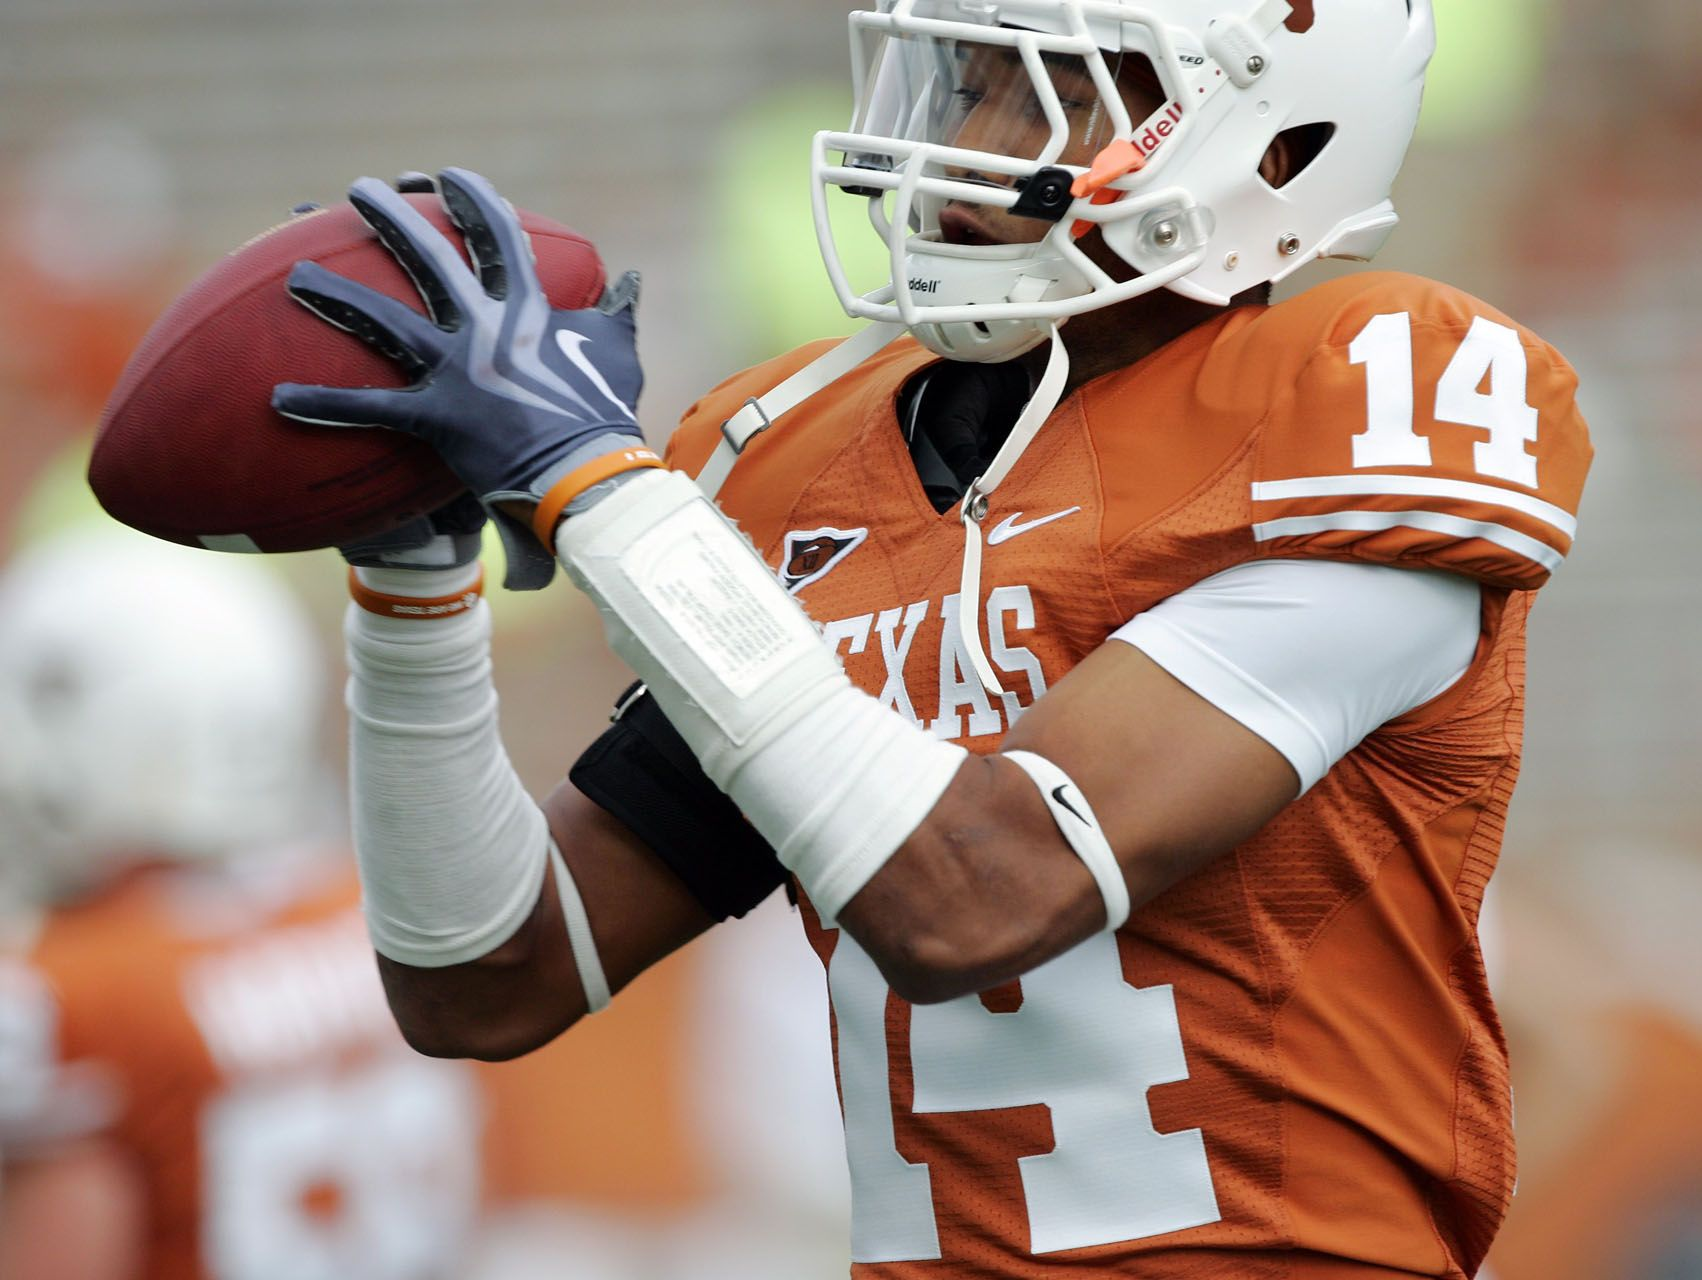 Defensive back Eryon Barnett of the Texas Longhorns catches the ball during warm-up prior to their game against the Louisiana Monroe Warhawks on September 5, 2009 in Austin.